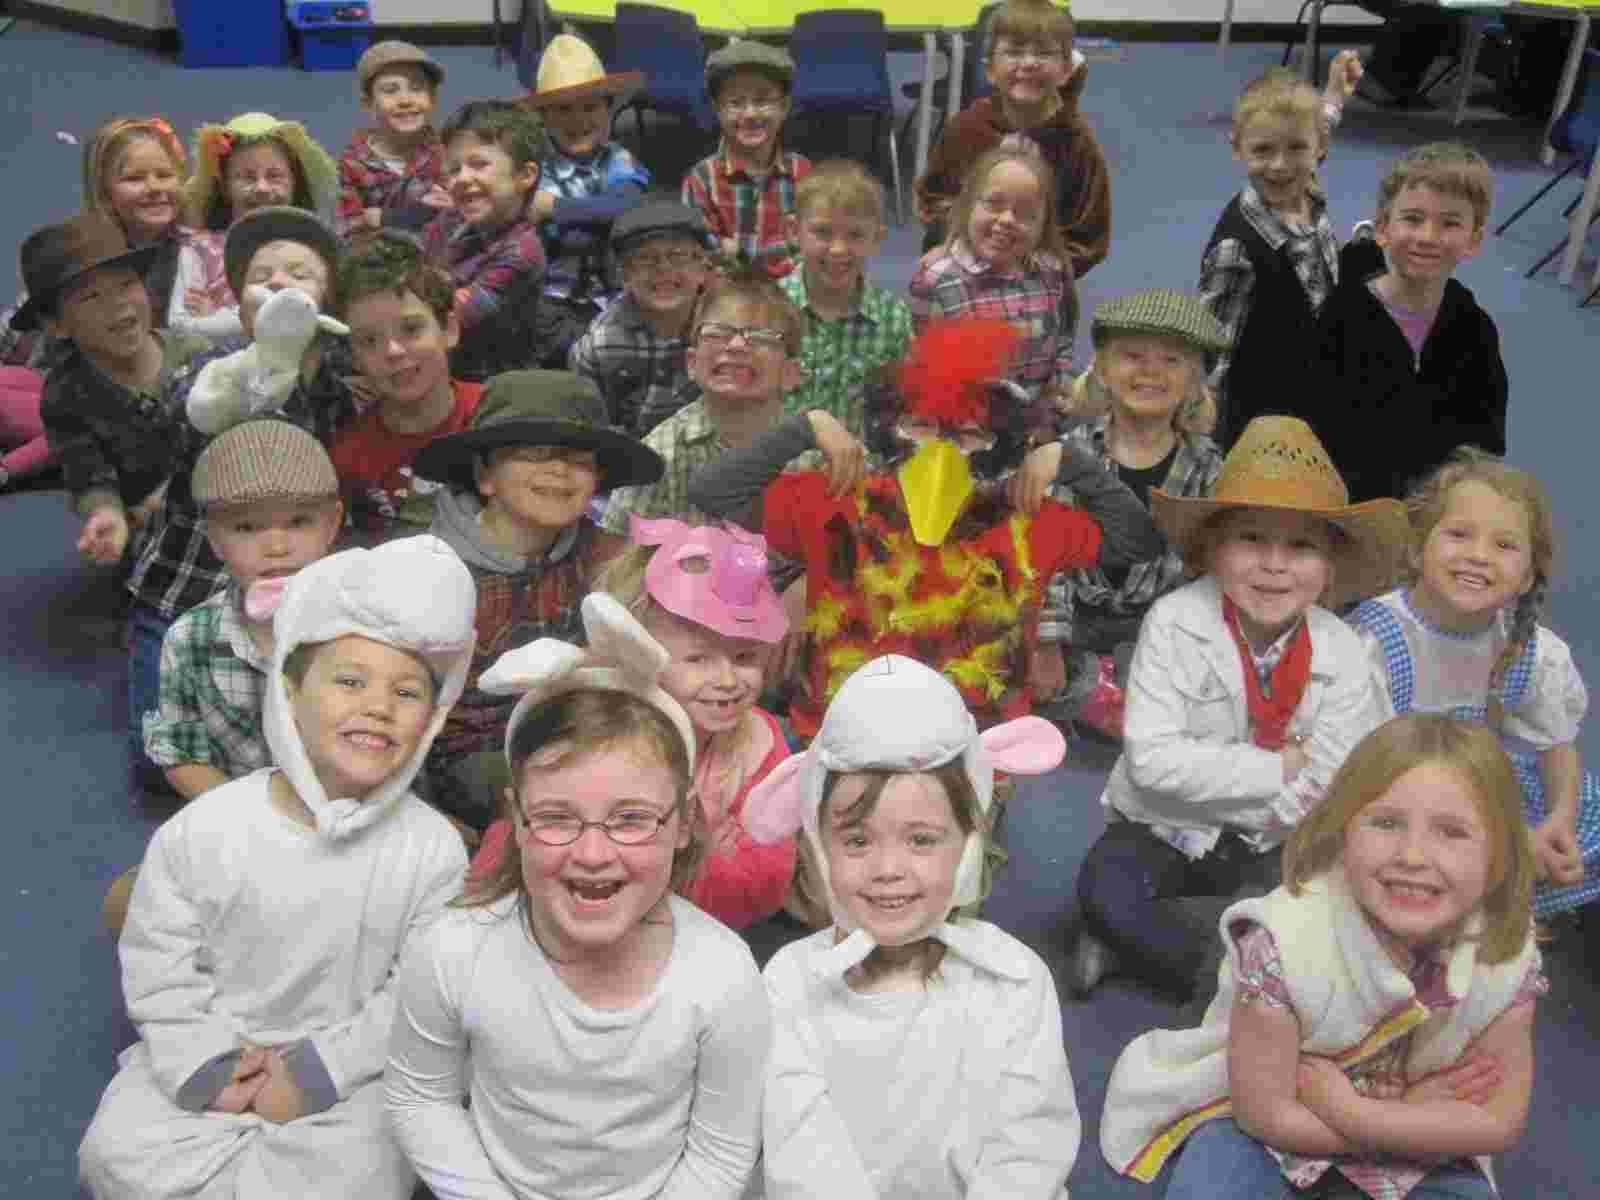 Farm topic fun for youngsters